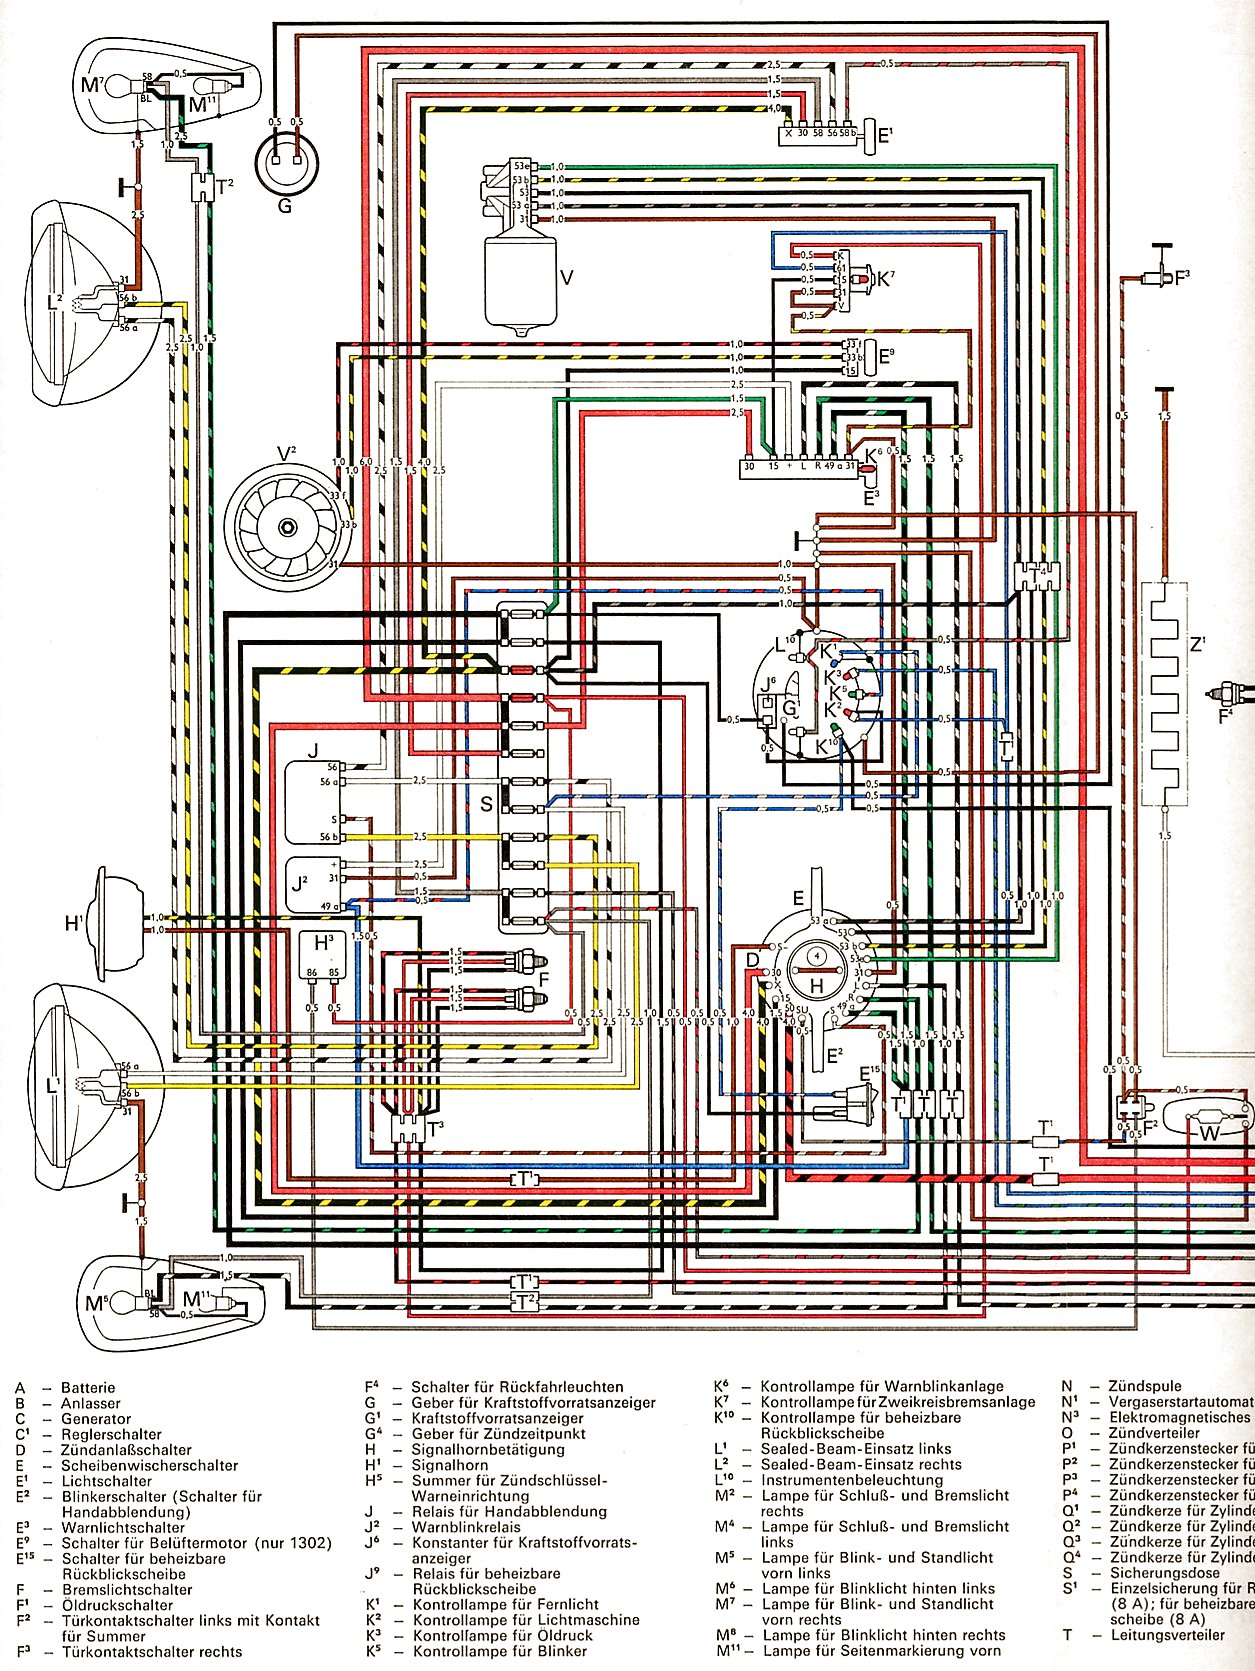 1300_and_1302_USA_from_August_1971 1 wiring help 1974 vw beetle shoptalkforums com vw bug wiring diagram at arjmand.co